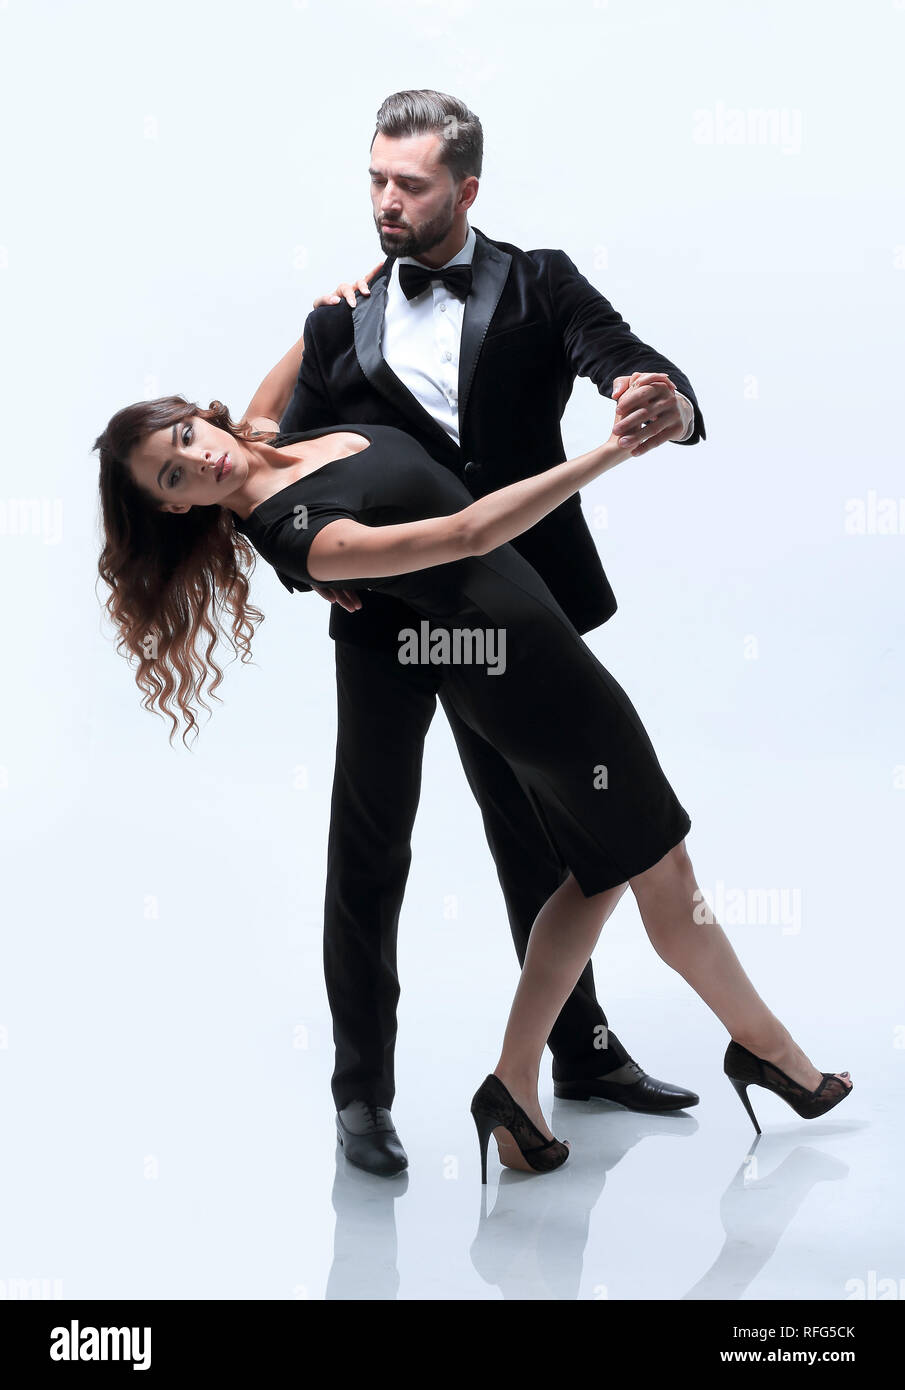 Flamenco Dance Couple High Resolution Stock Photography And Images Alamy